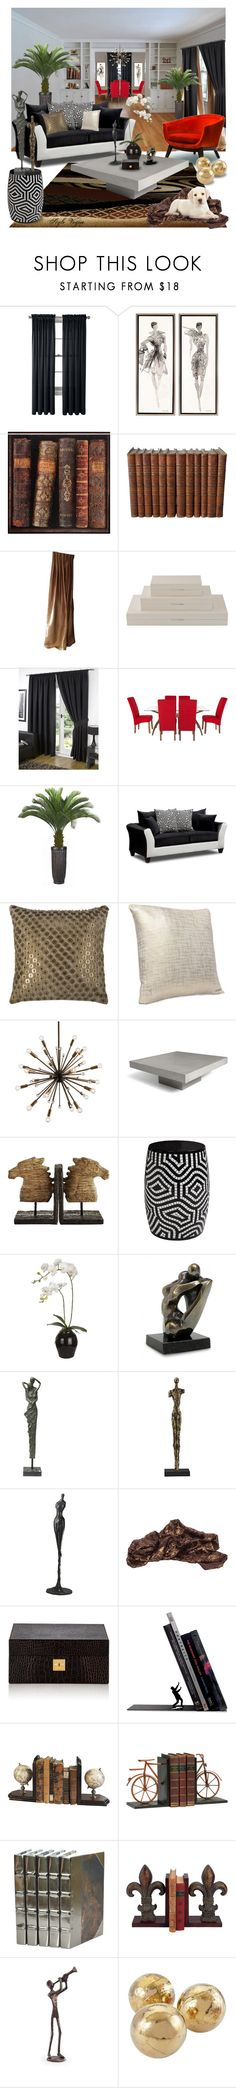 """""""Relaxed and warm space"""" by lamipaz ❤ liked on Polyvore featuring interior, interiors, interior design, home, home decor, interior decorating, Royal Velvet, Universal Lighting and Decor, Global Views and Laura Ashley"""